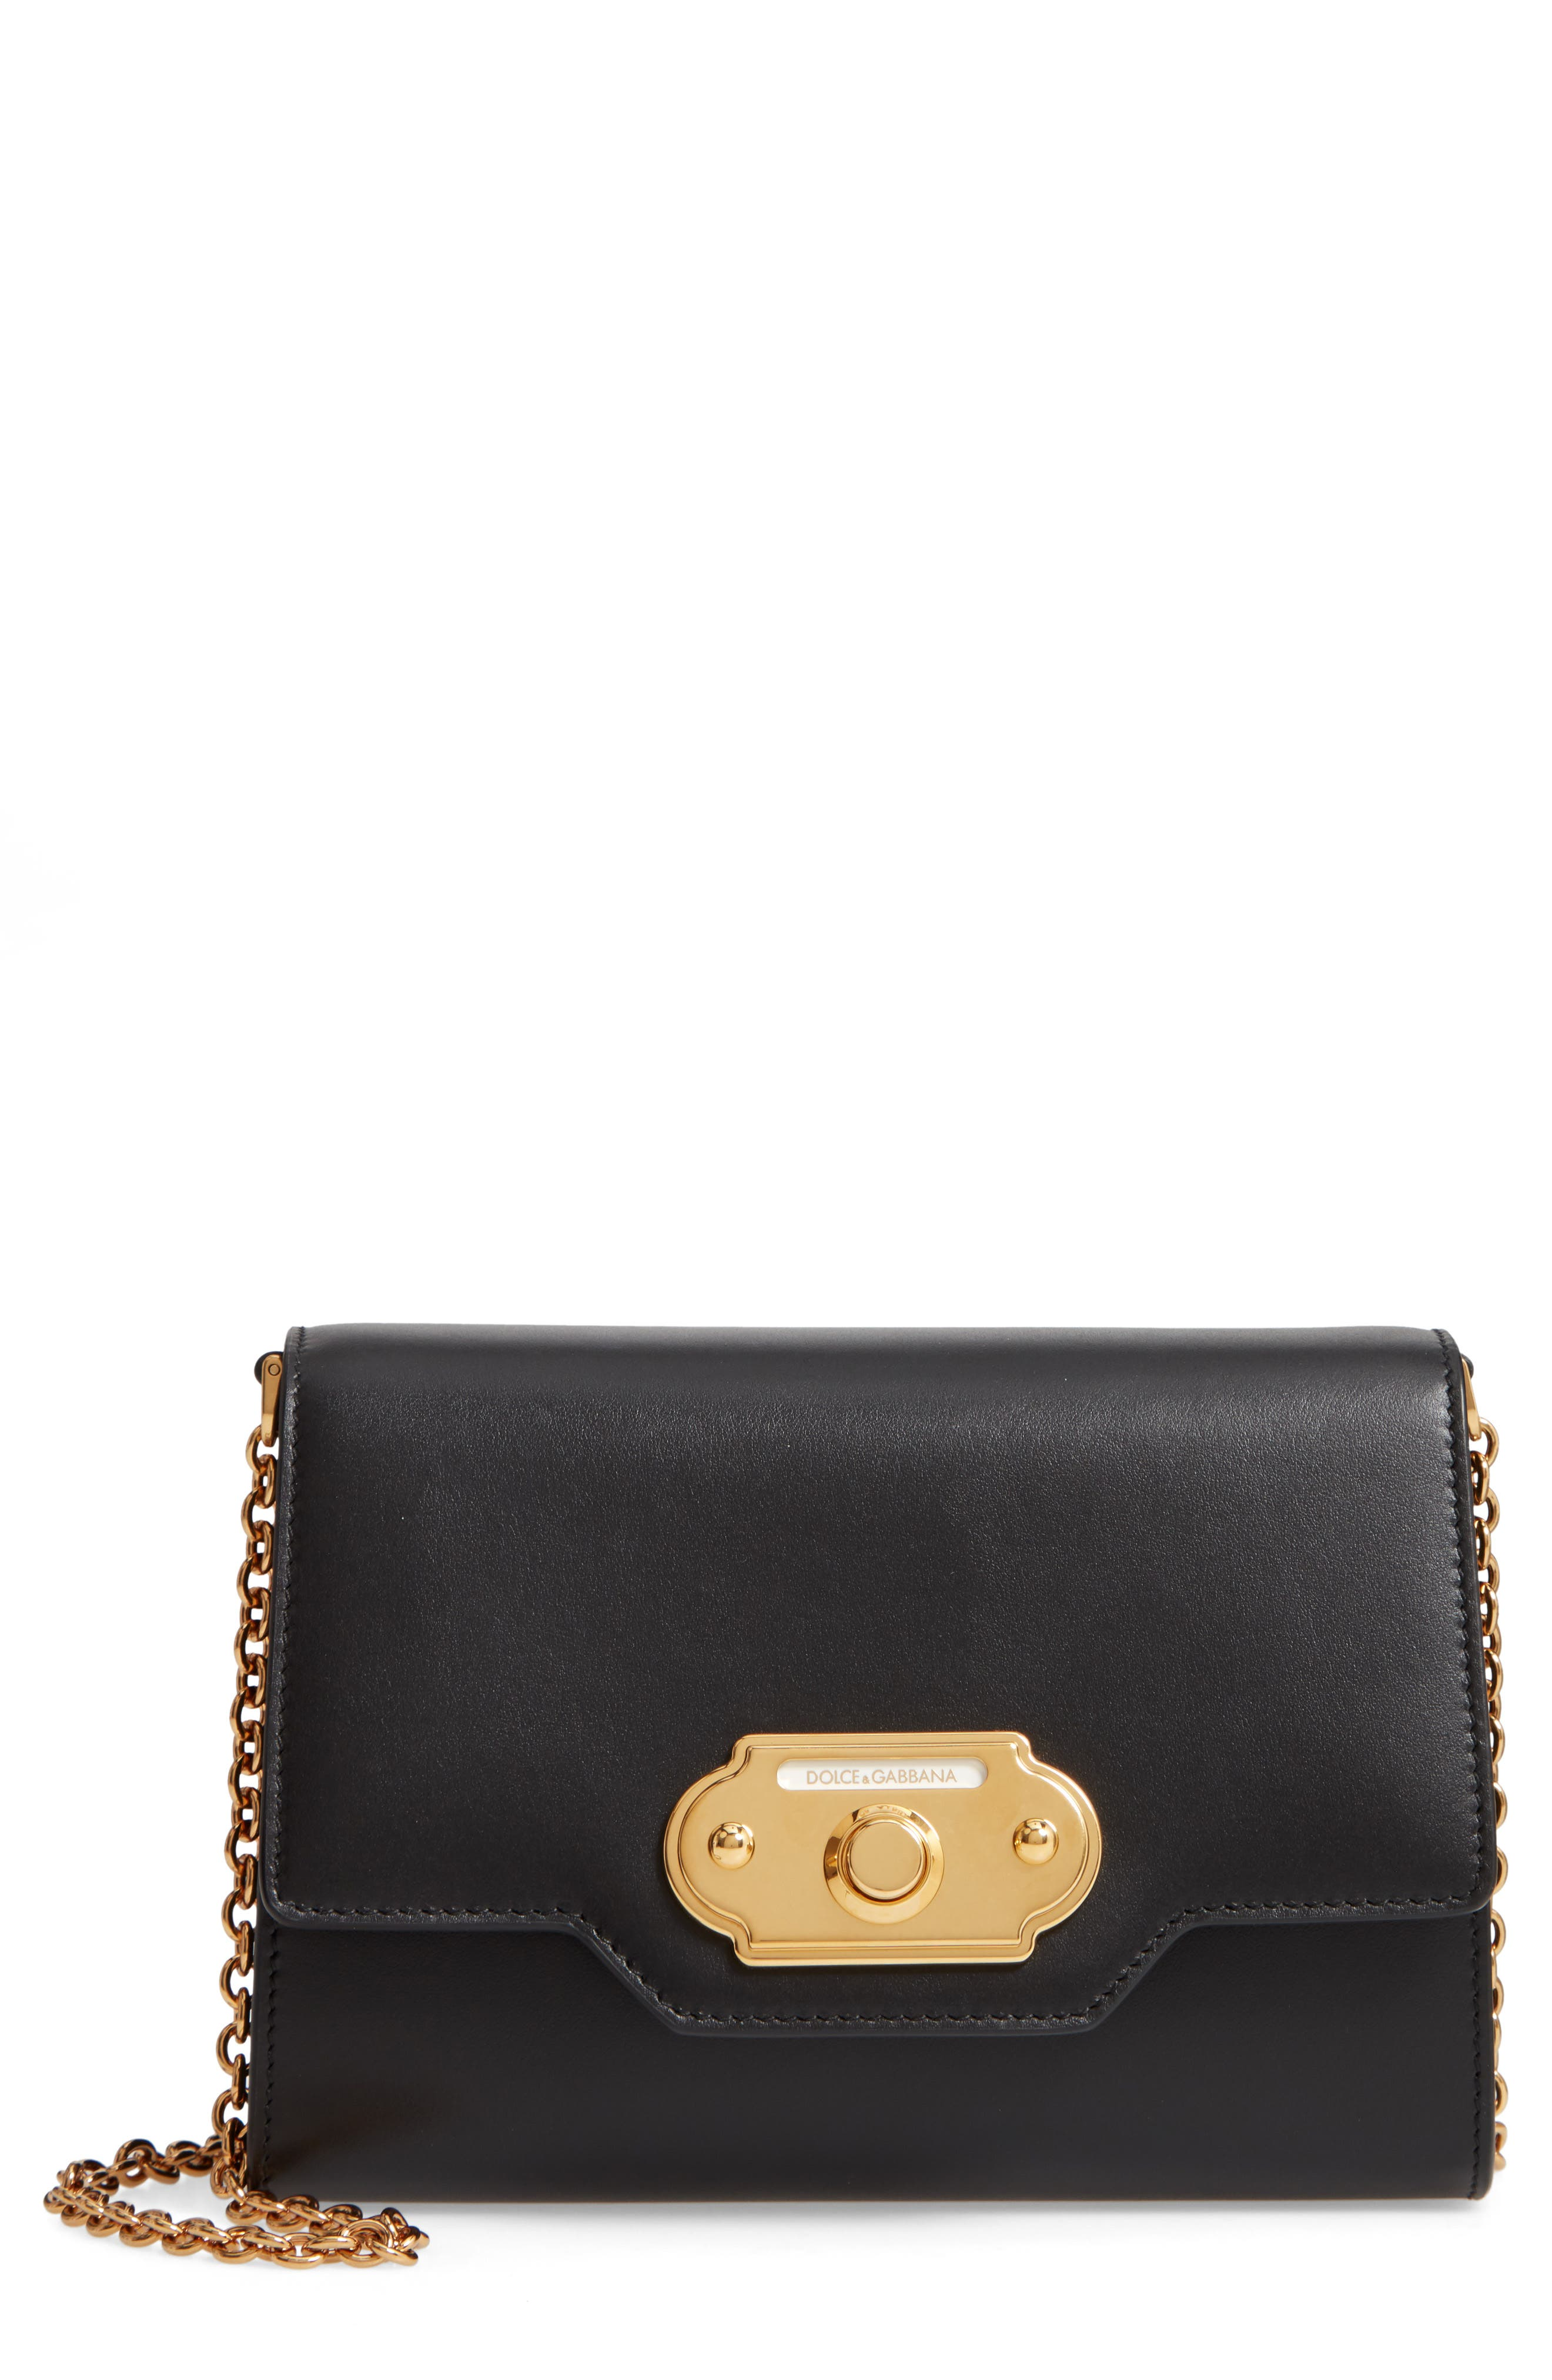 DOLCE&GABBANA, Leather Clutch, Main thumbnail 1, color, NERO